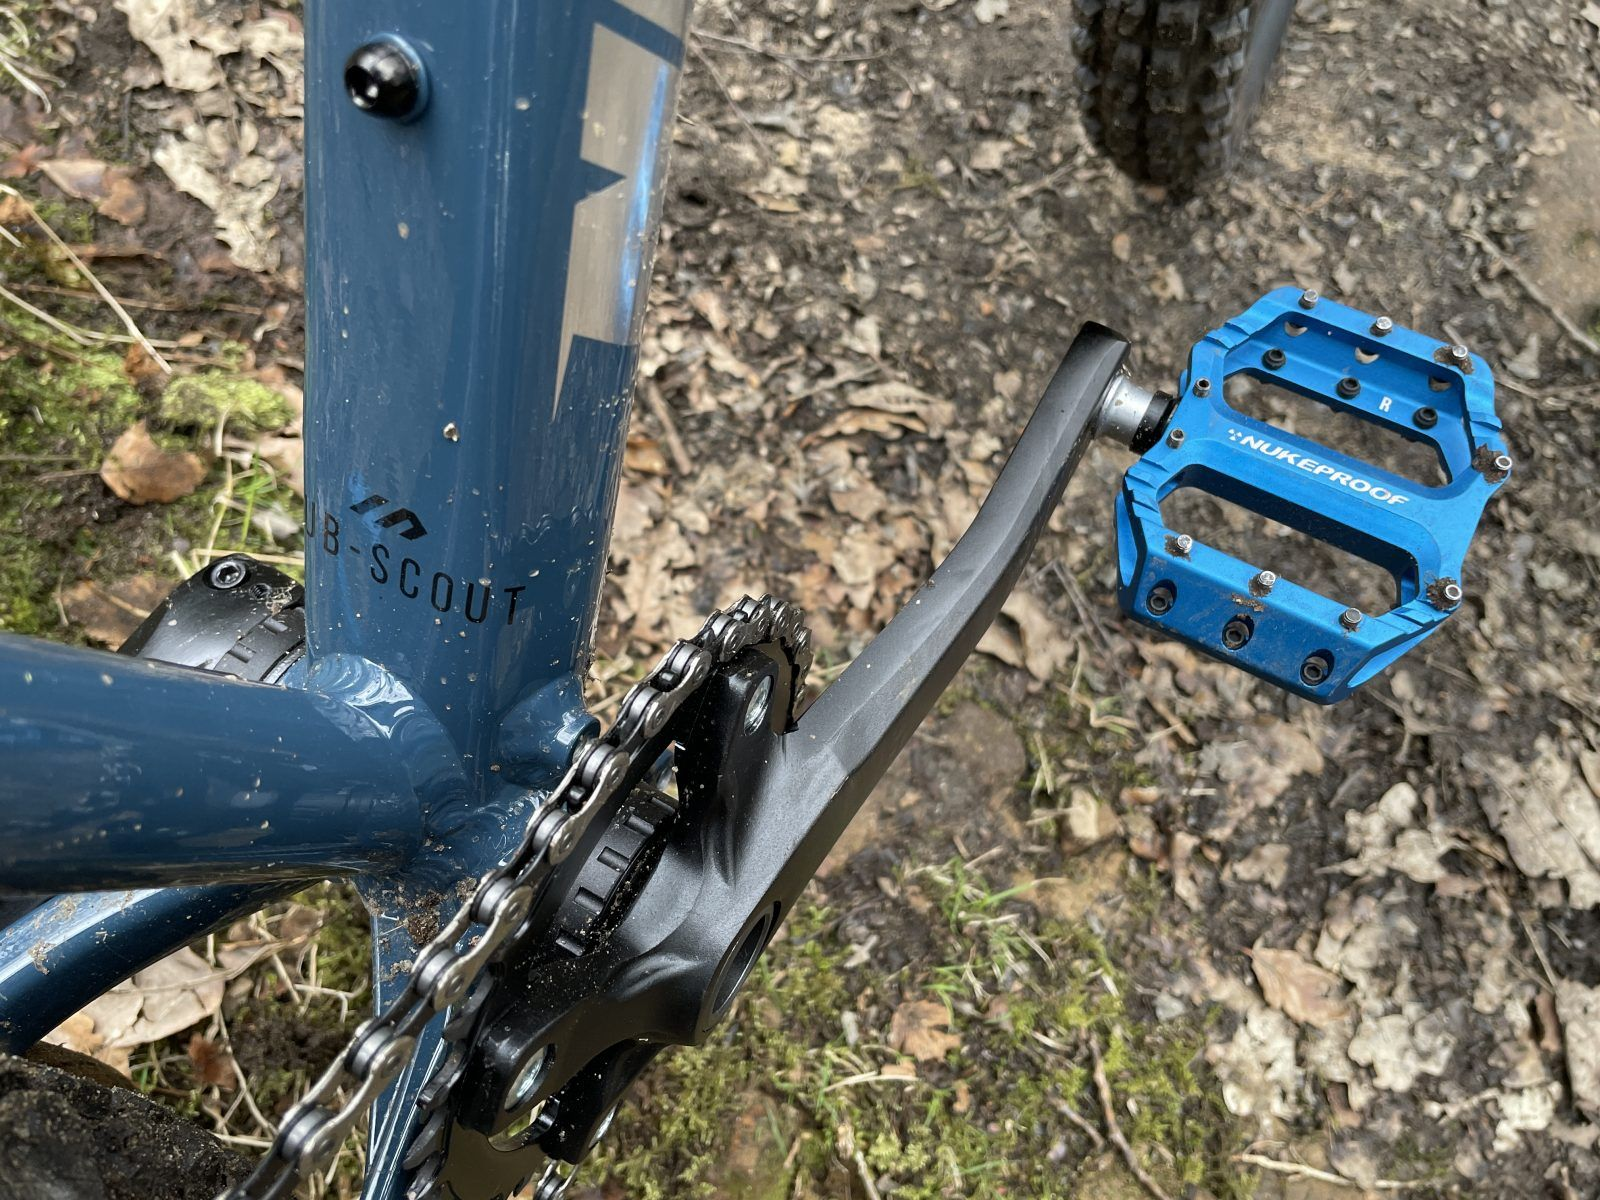 Nukeproof Urchin pedals